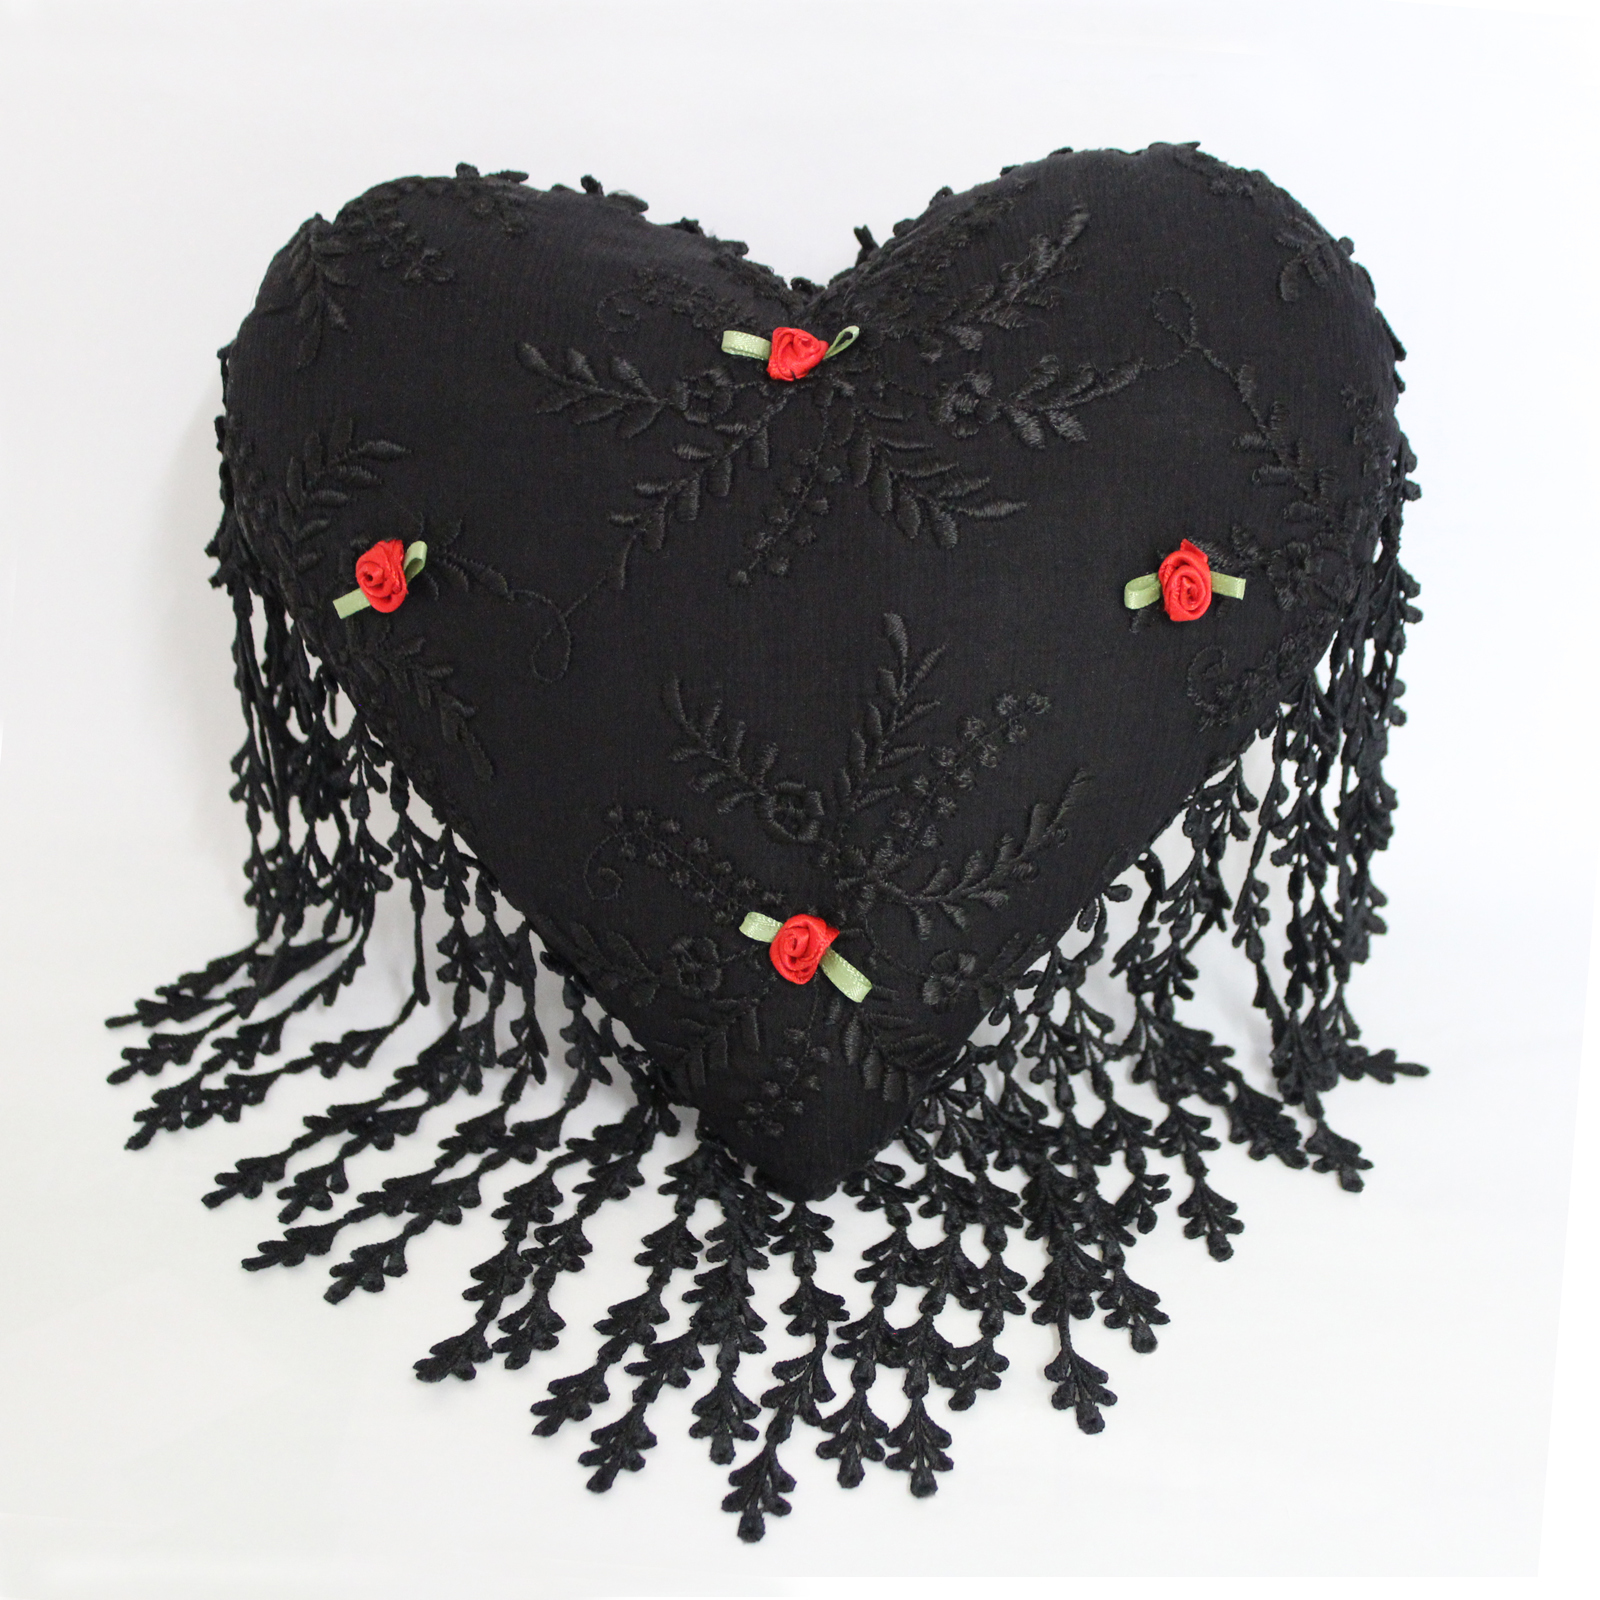 Black Silk and Nottingham Lace Heart Cushion with Rosebud Detail by Ruth Stevens